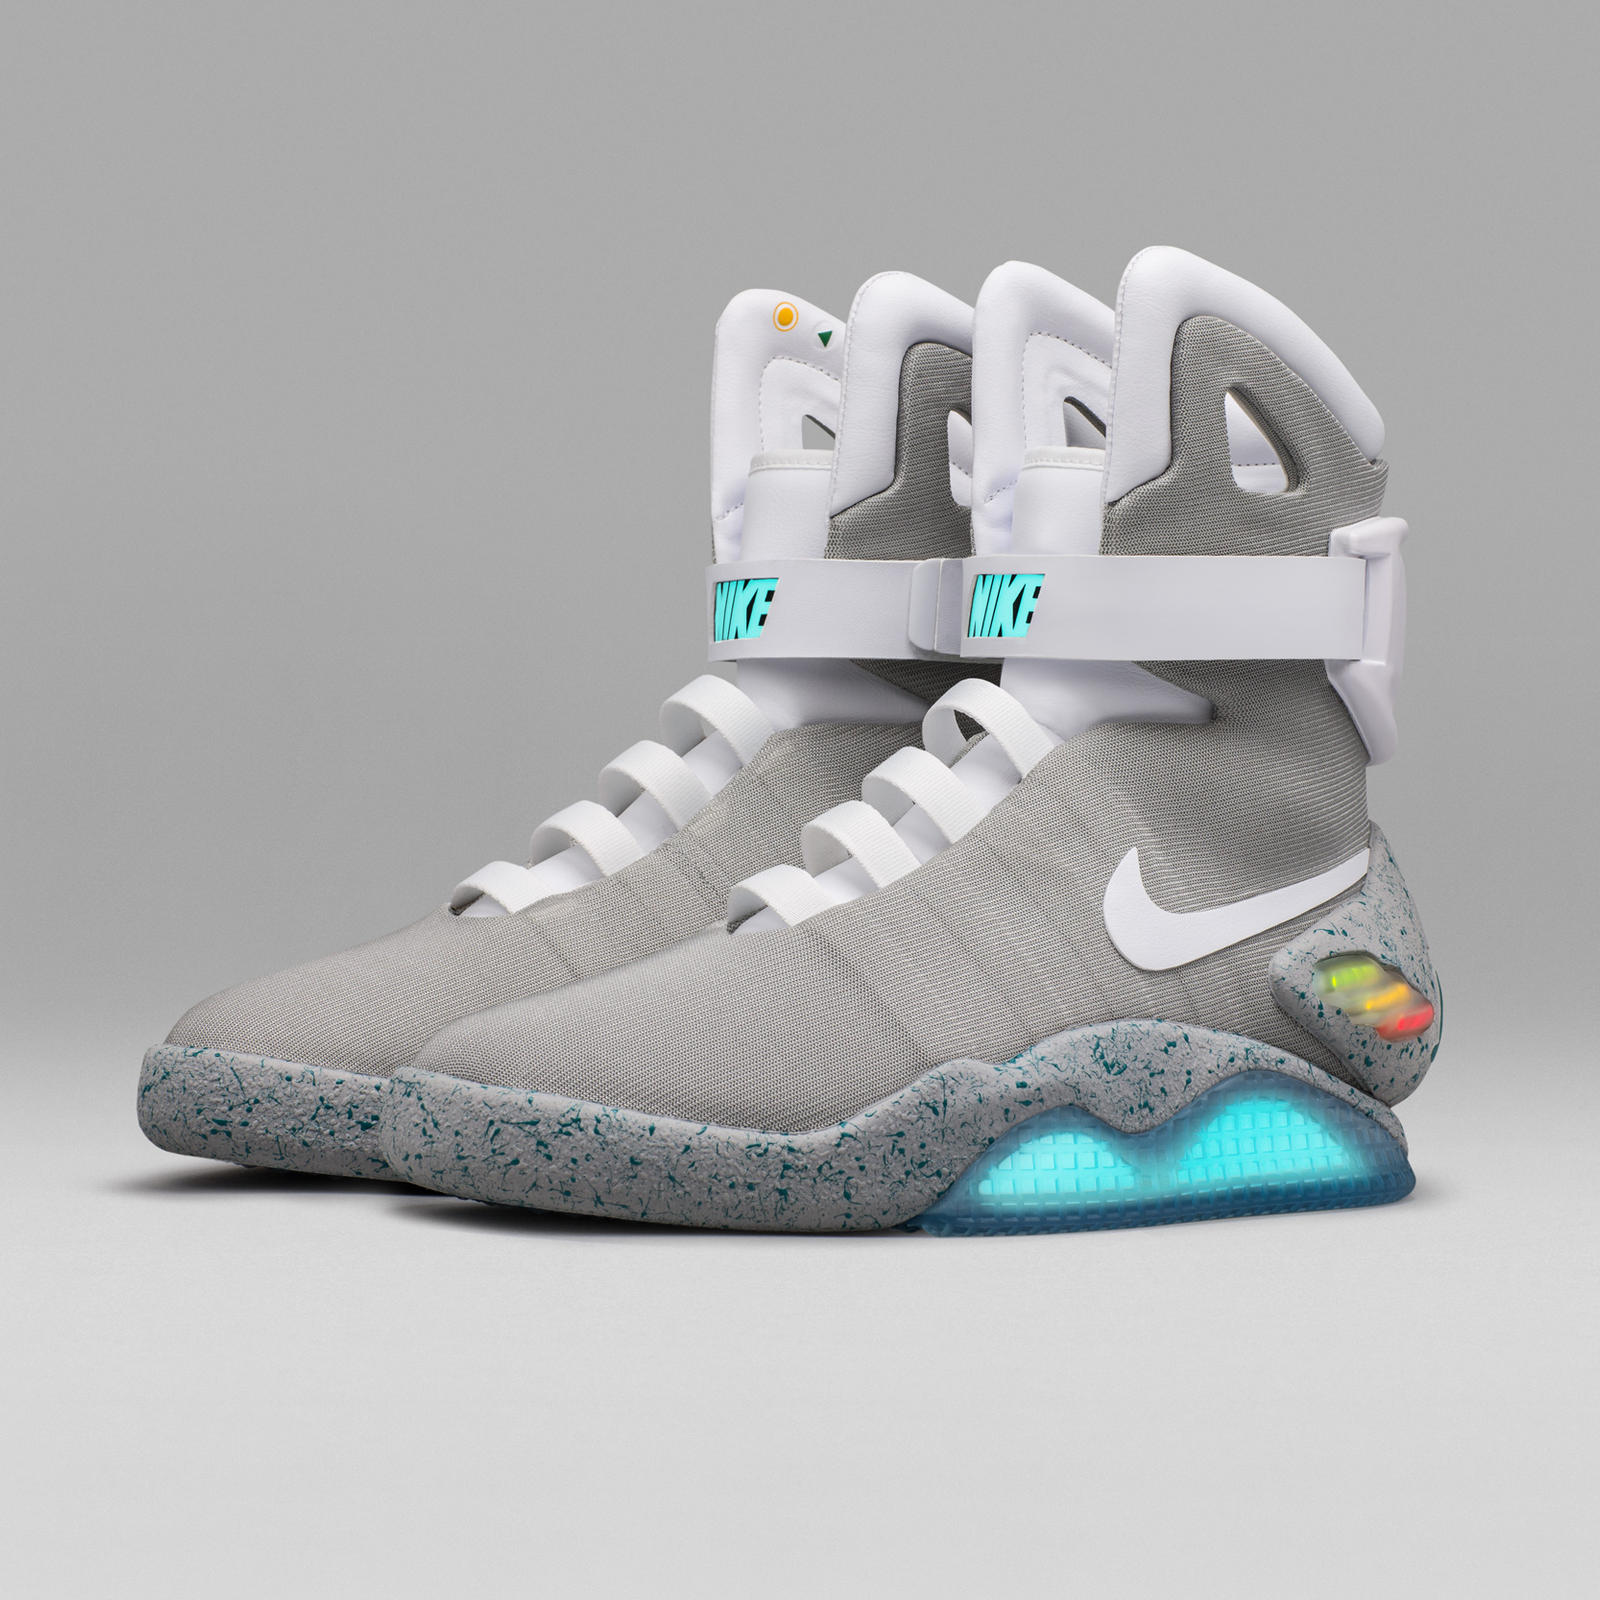 Nike-Mag-2016-Official-06_square_1600.jpg